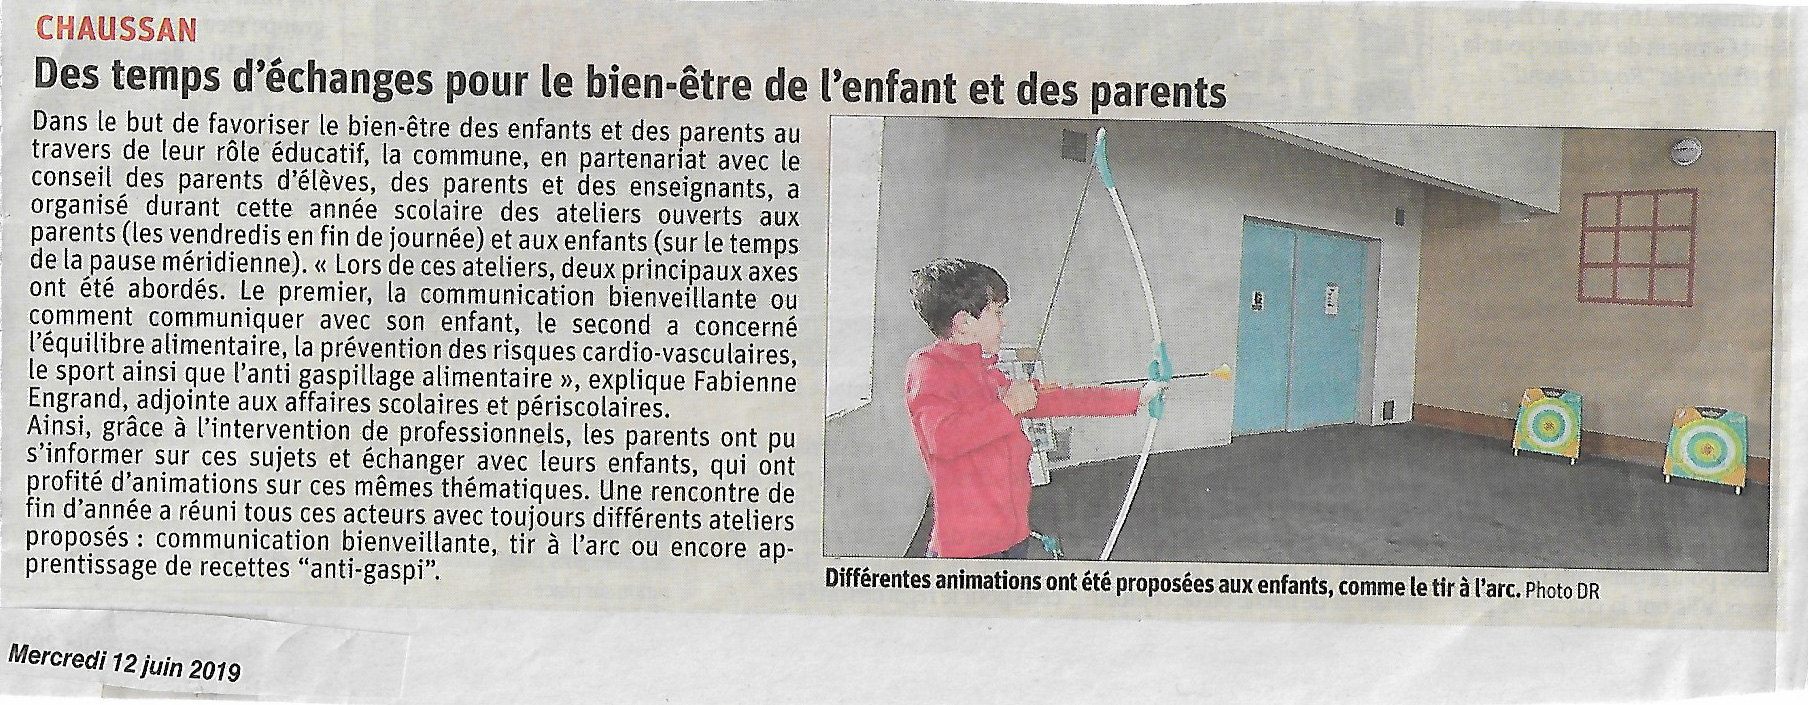 article presserencontre 07 06 19